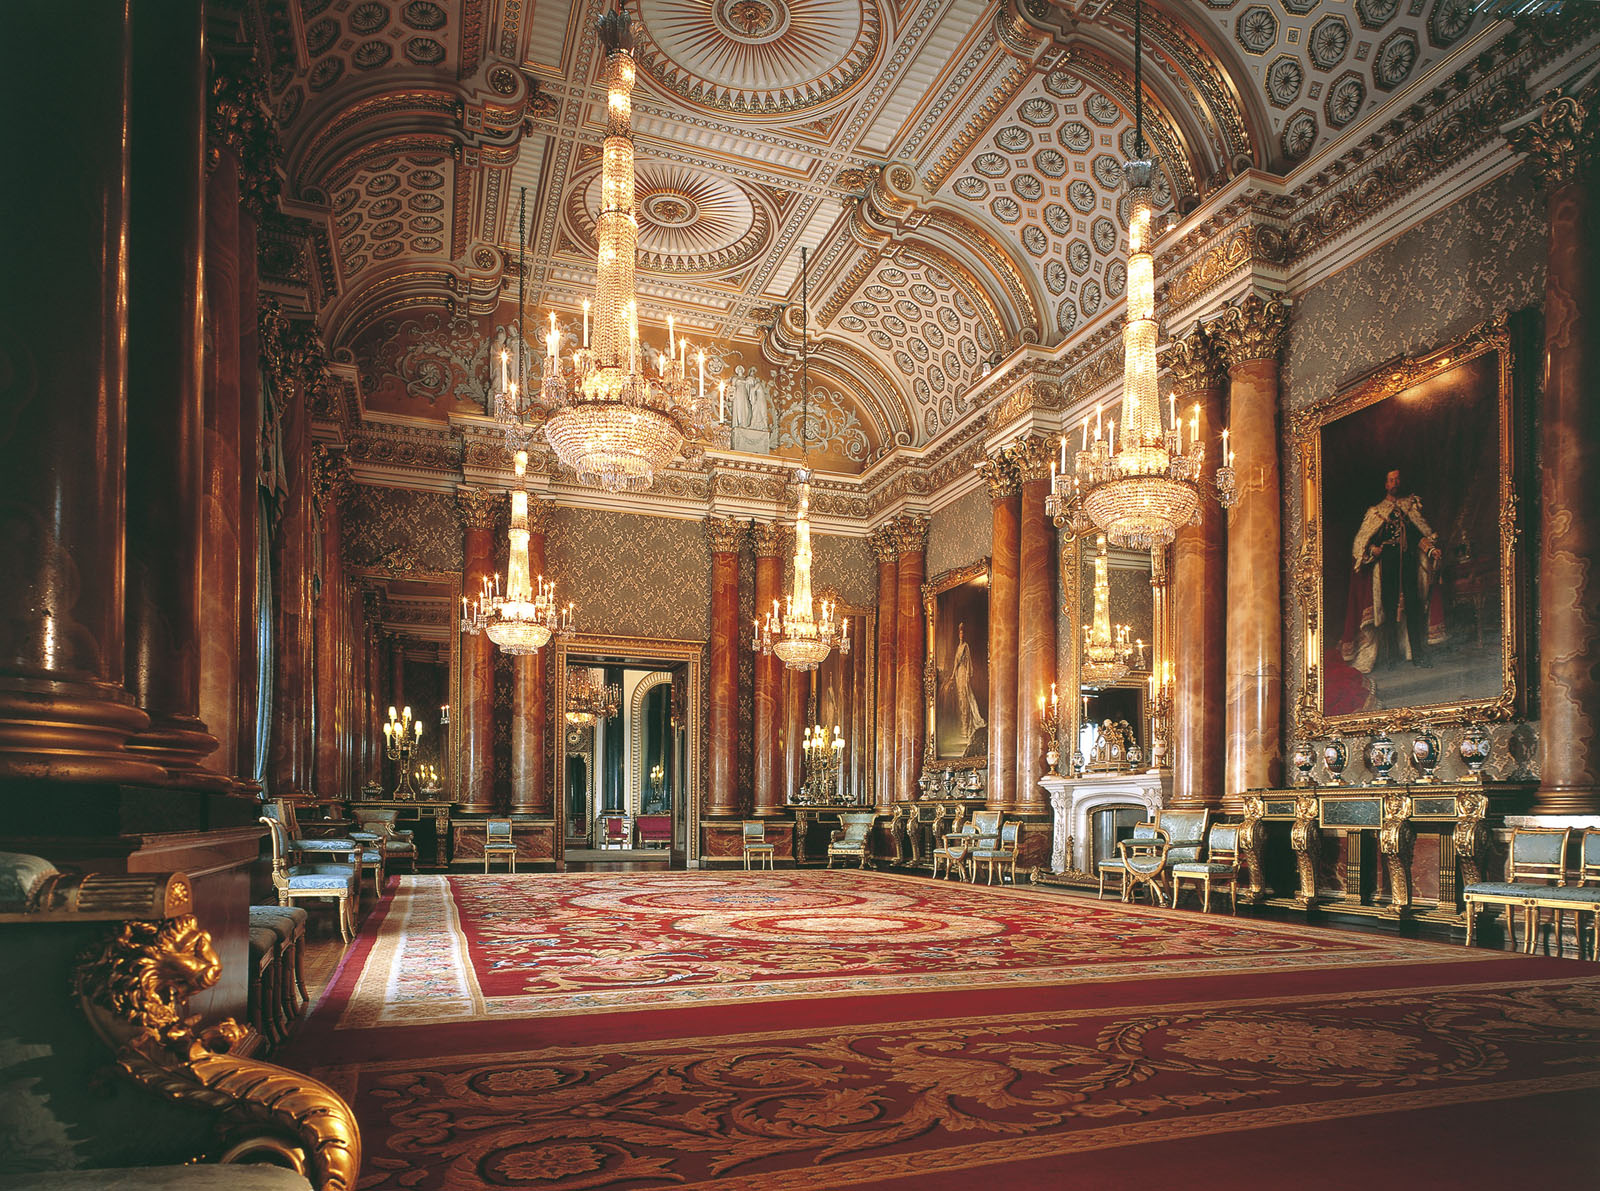 Pics Photos Palace Interior Photos : Buckingham Palace Blue Drawing Room from funny-pictures.picphotos.net size 1600 x 1191 jpeg 637kB